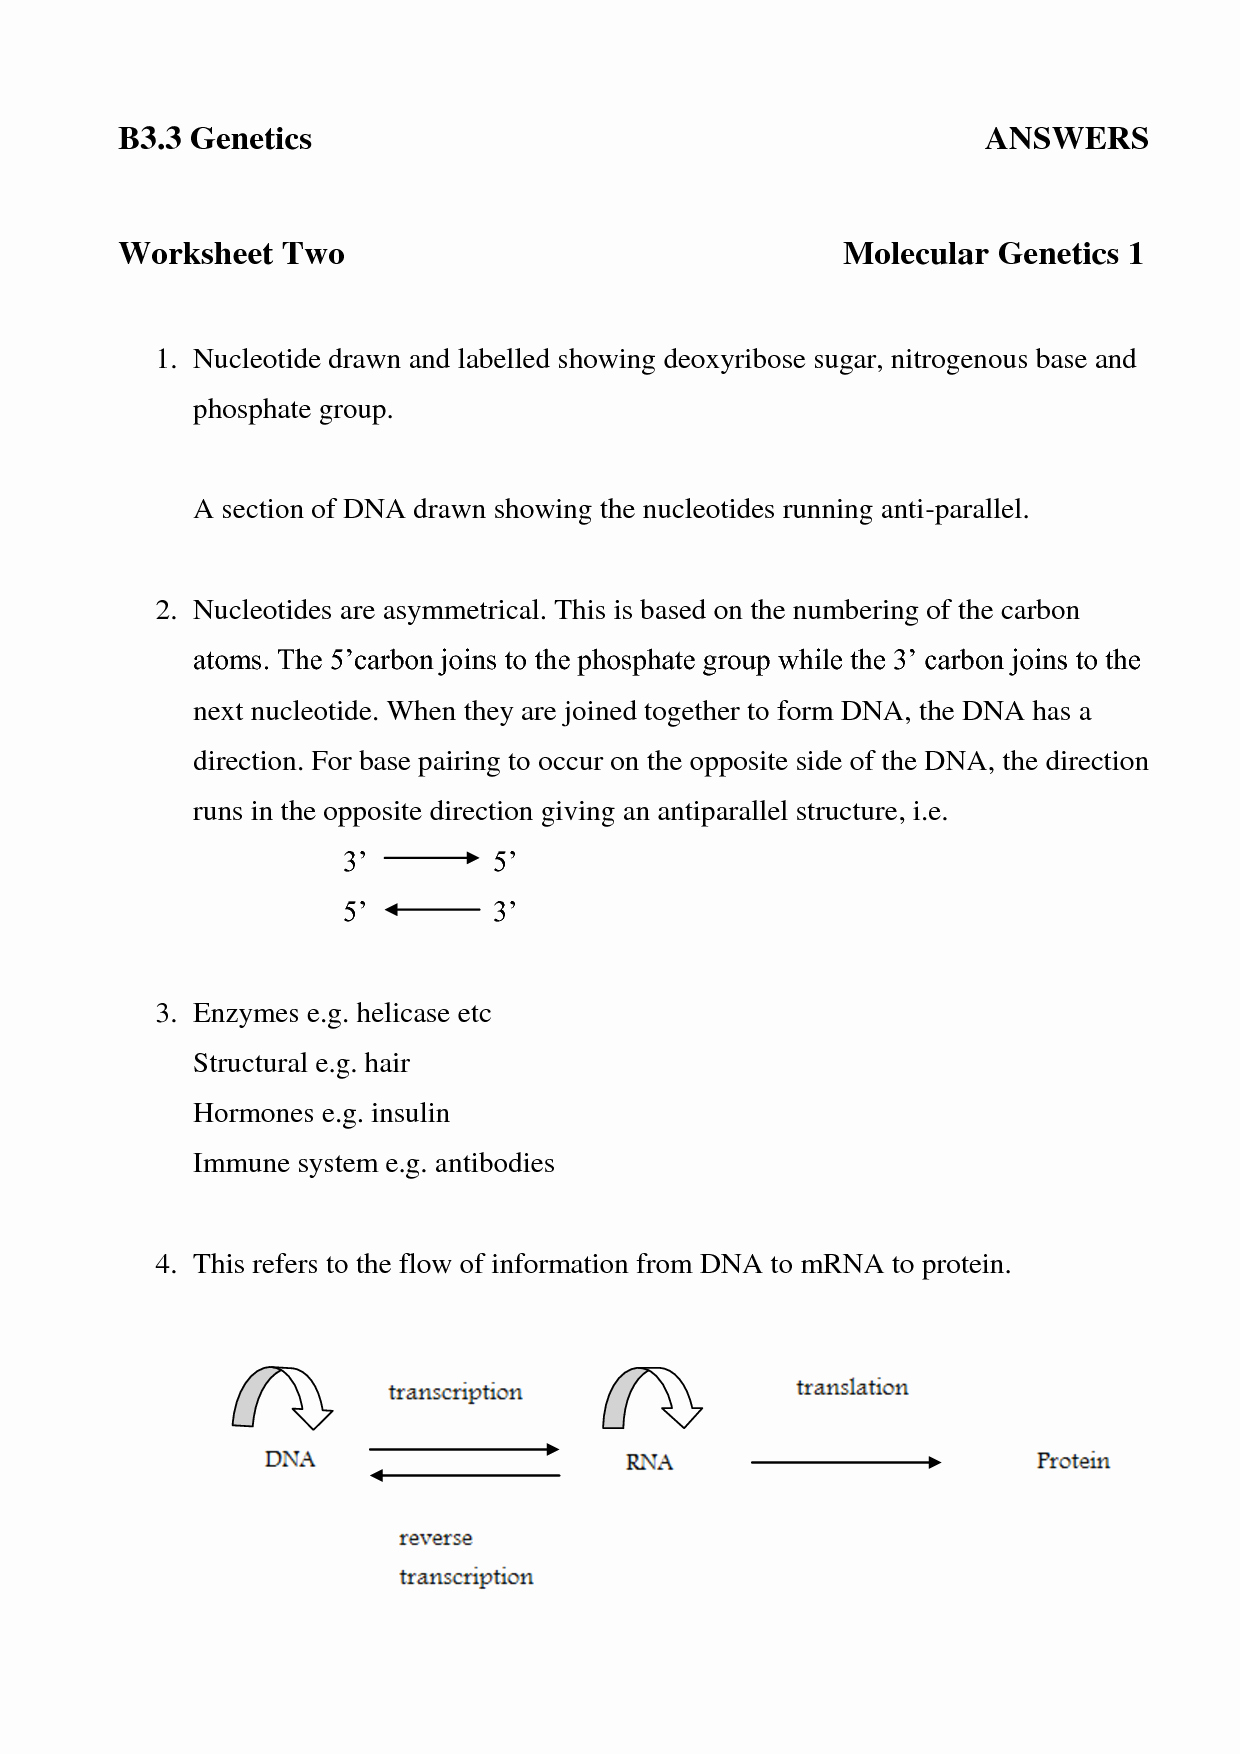 Dna and Rna Worksheet Answers Lovely 16 Best Of Dna and Rna Protein Synthesis Worksheet